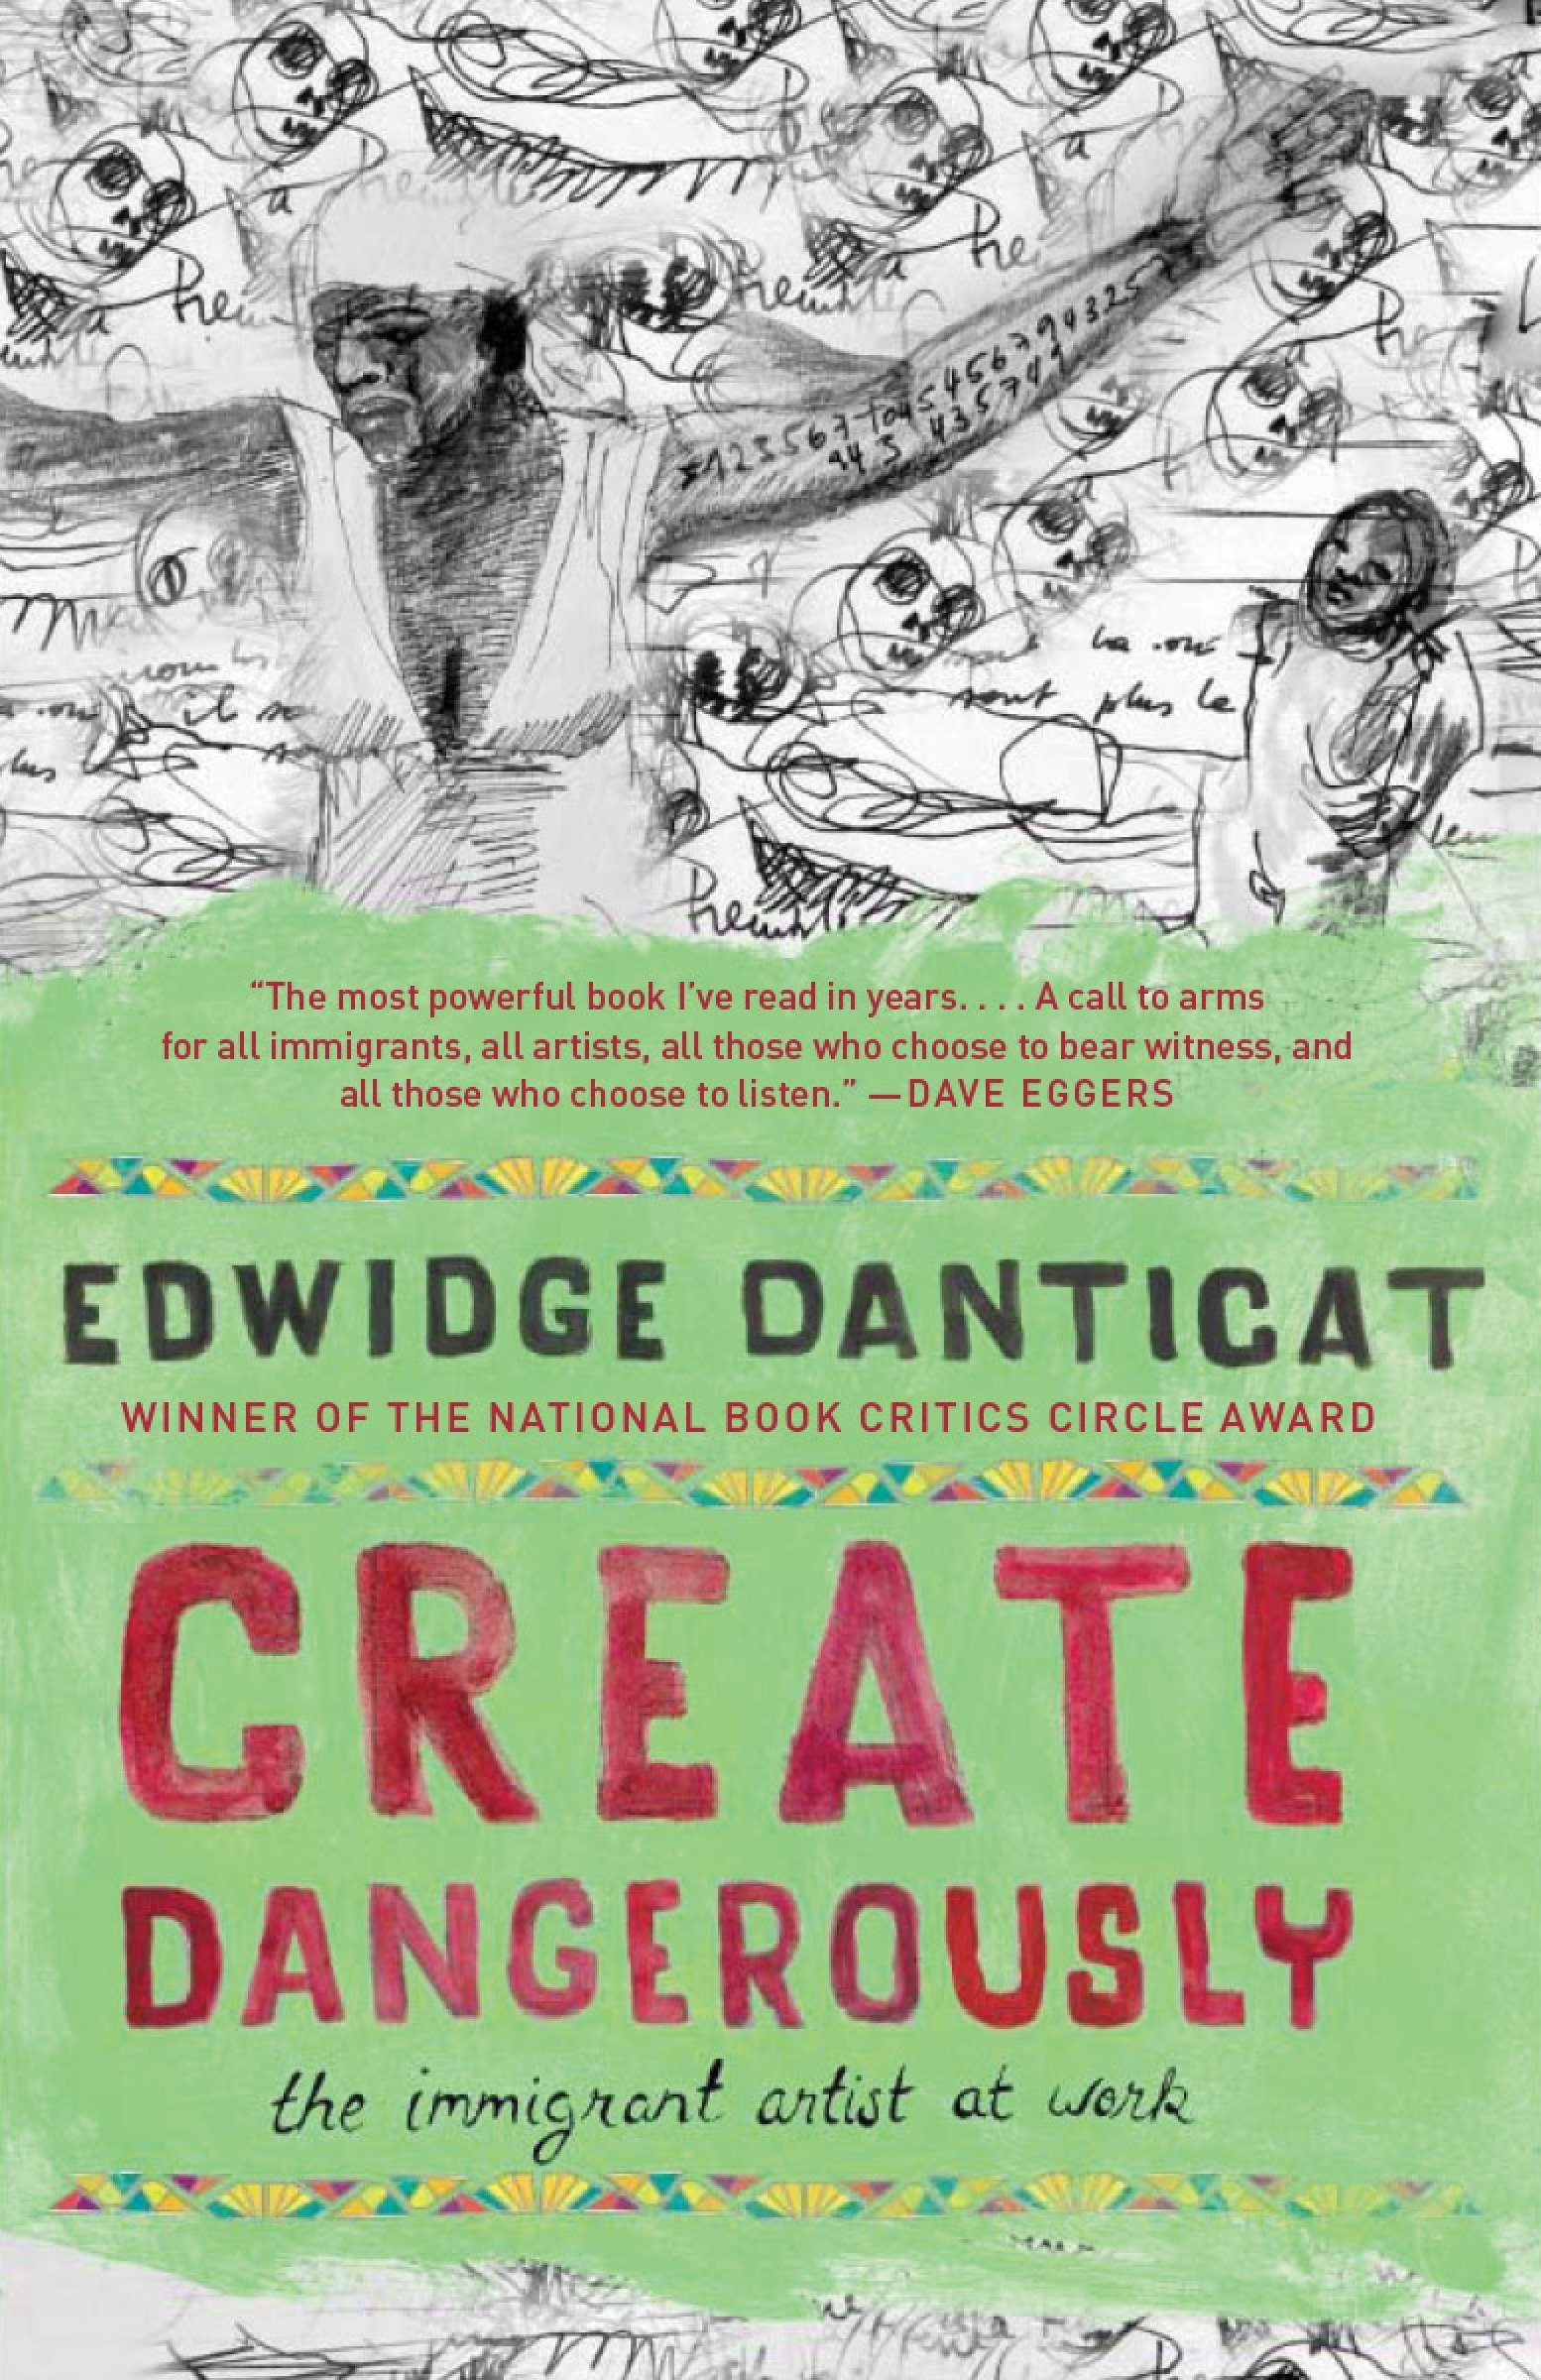 Edwidge Danticat / Create Dangerously; The inmigant artist at work / Vintage 2011 ( Haiti)